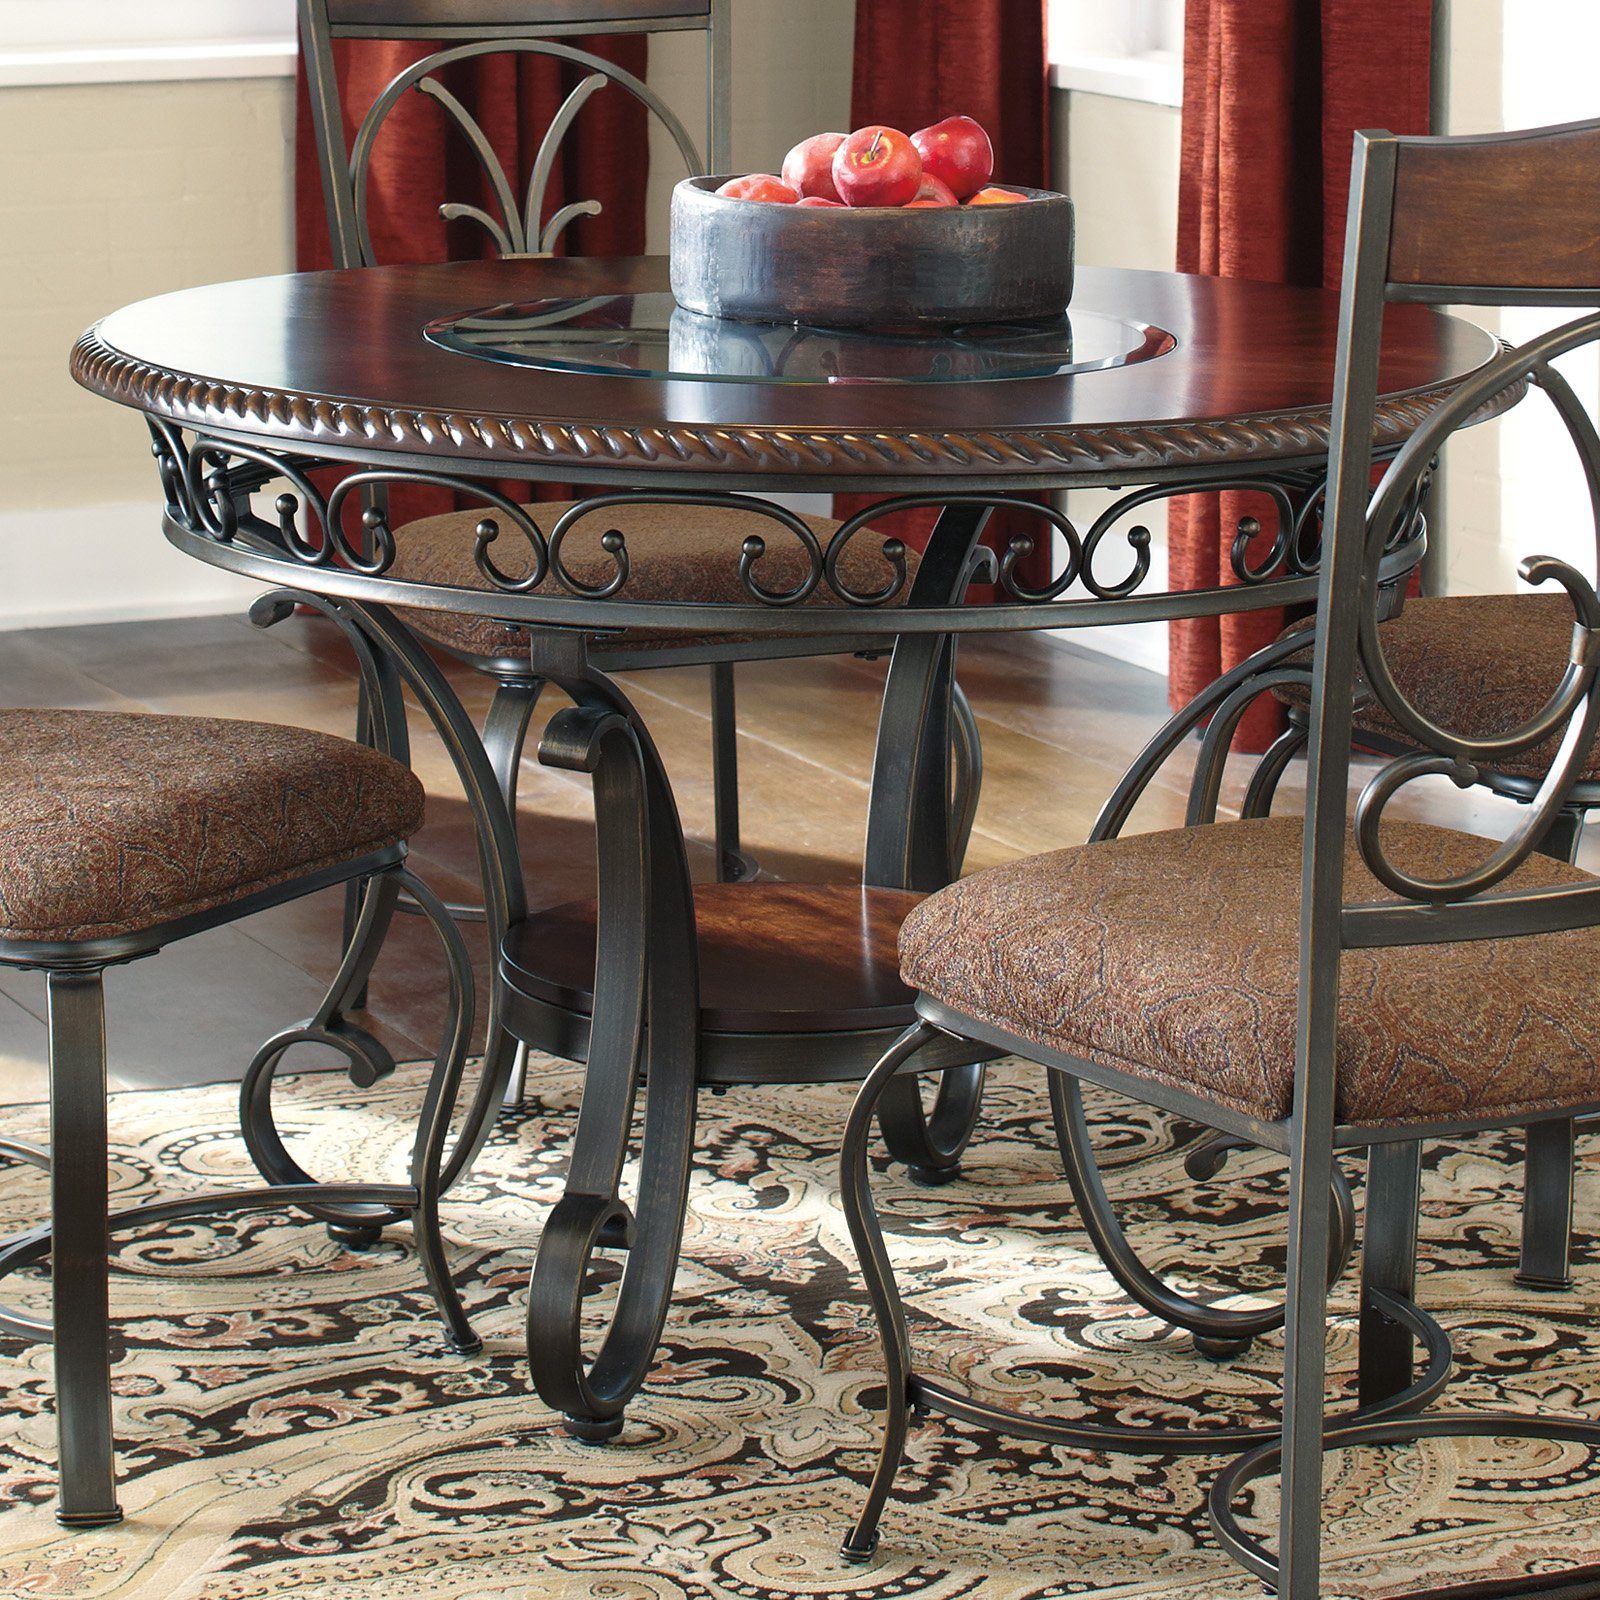 Signature Design By Ashley Glambrey Round Dining Table   Walmart.com